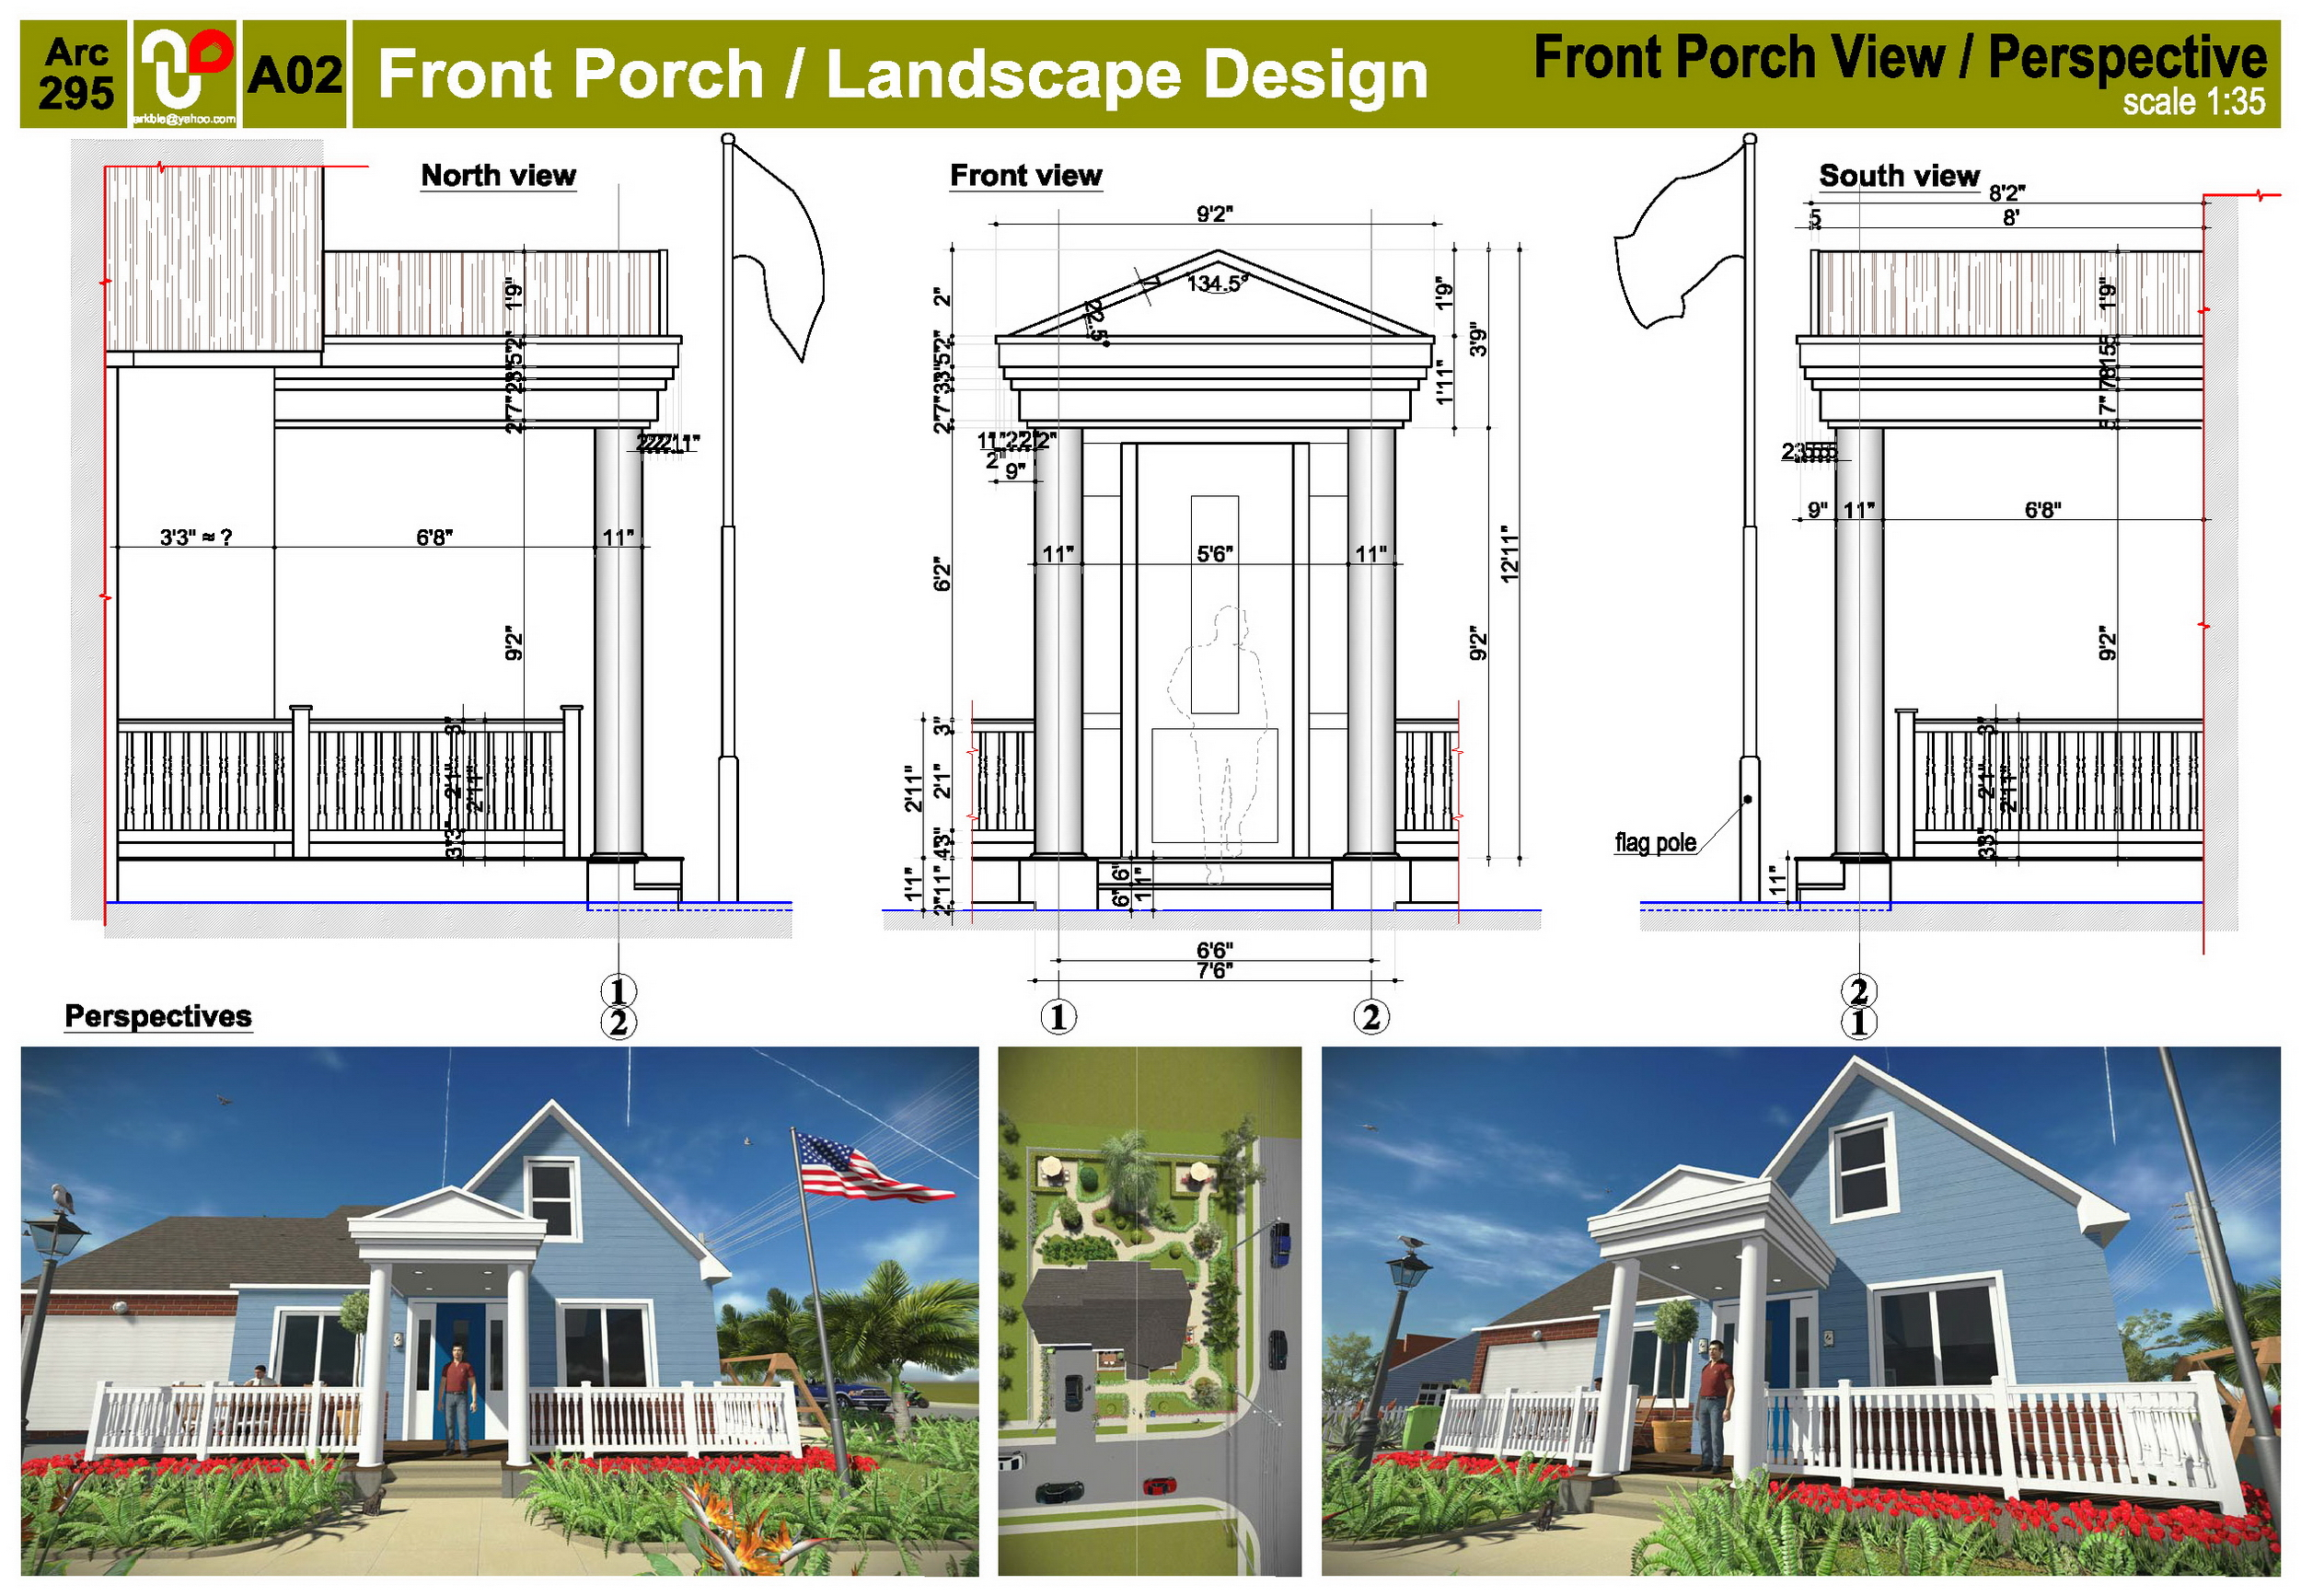 Viewdesignerproject projectfrontyard design for Mississippi landscape architects